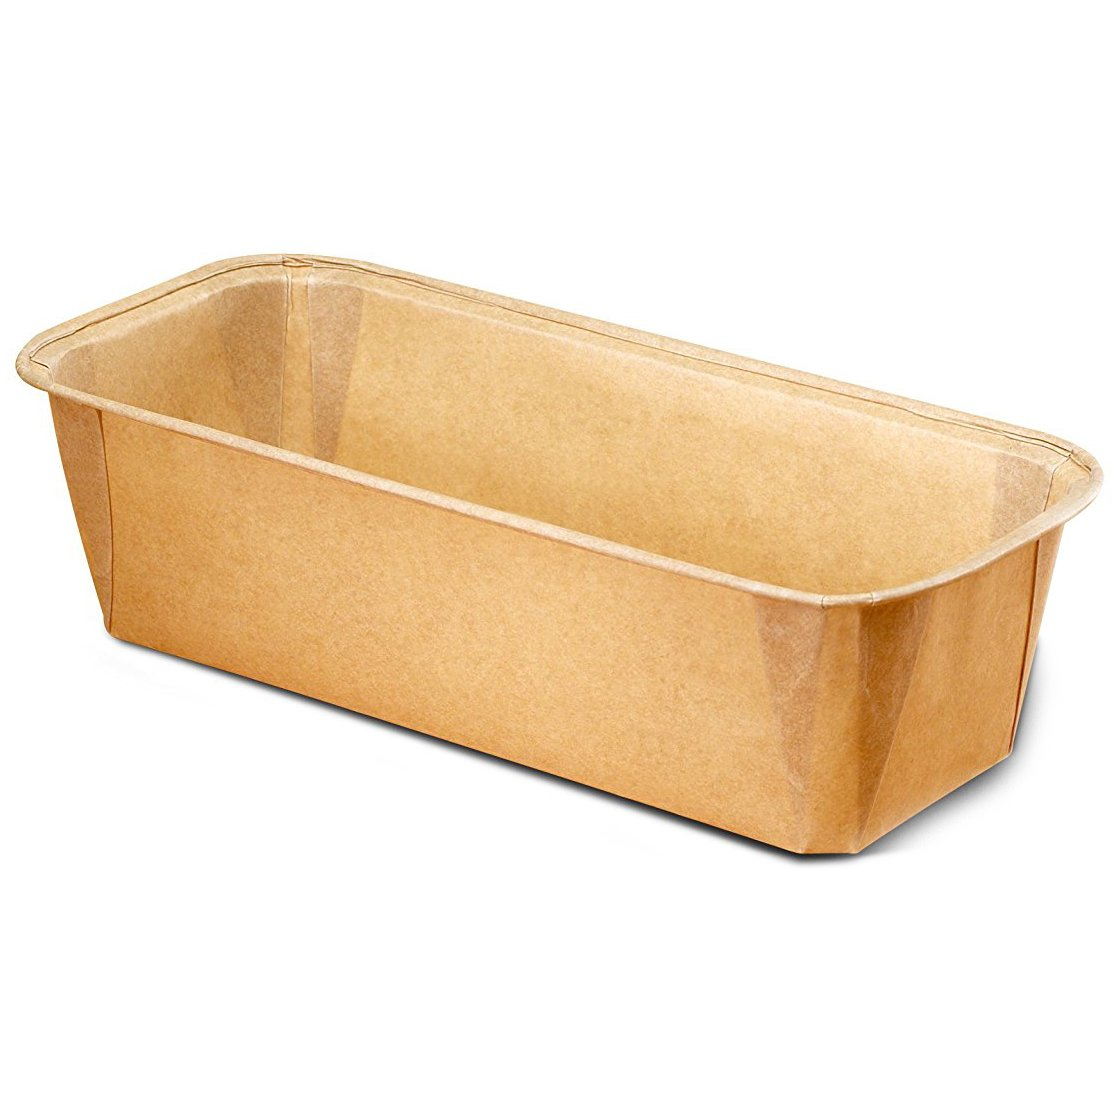 Paper Bakeware Loaf Pan,bake your Loafs Cakes, Banana Cake, Seed Bread. Anything you wish to bake in a rectangular shape Size L 6 1/5'' x W 2 1/5'' x H 2'' Model 8015550G (675)